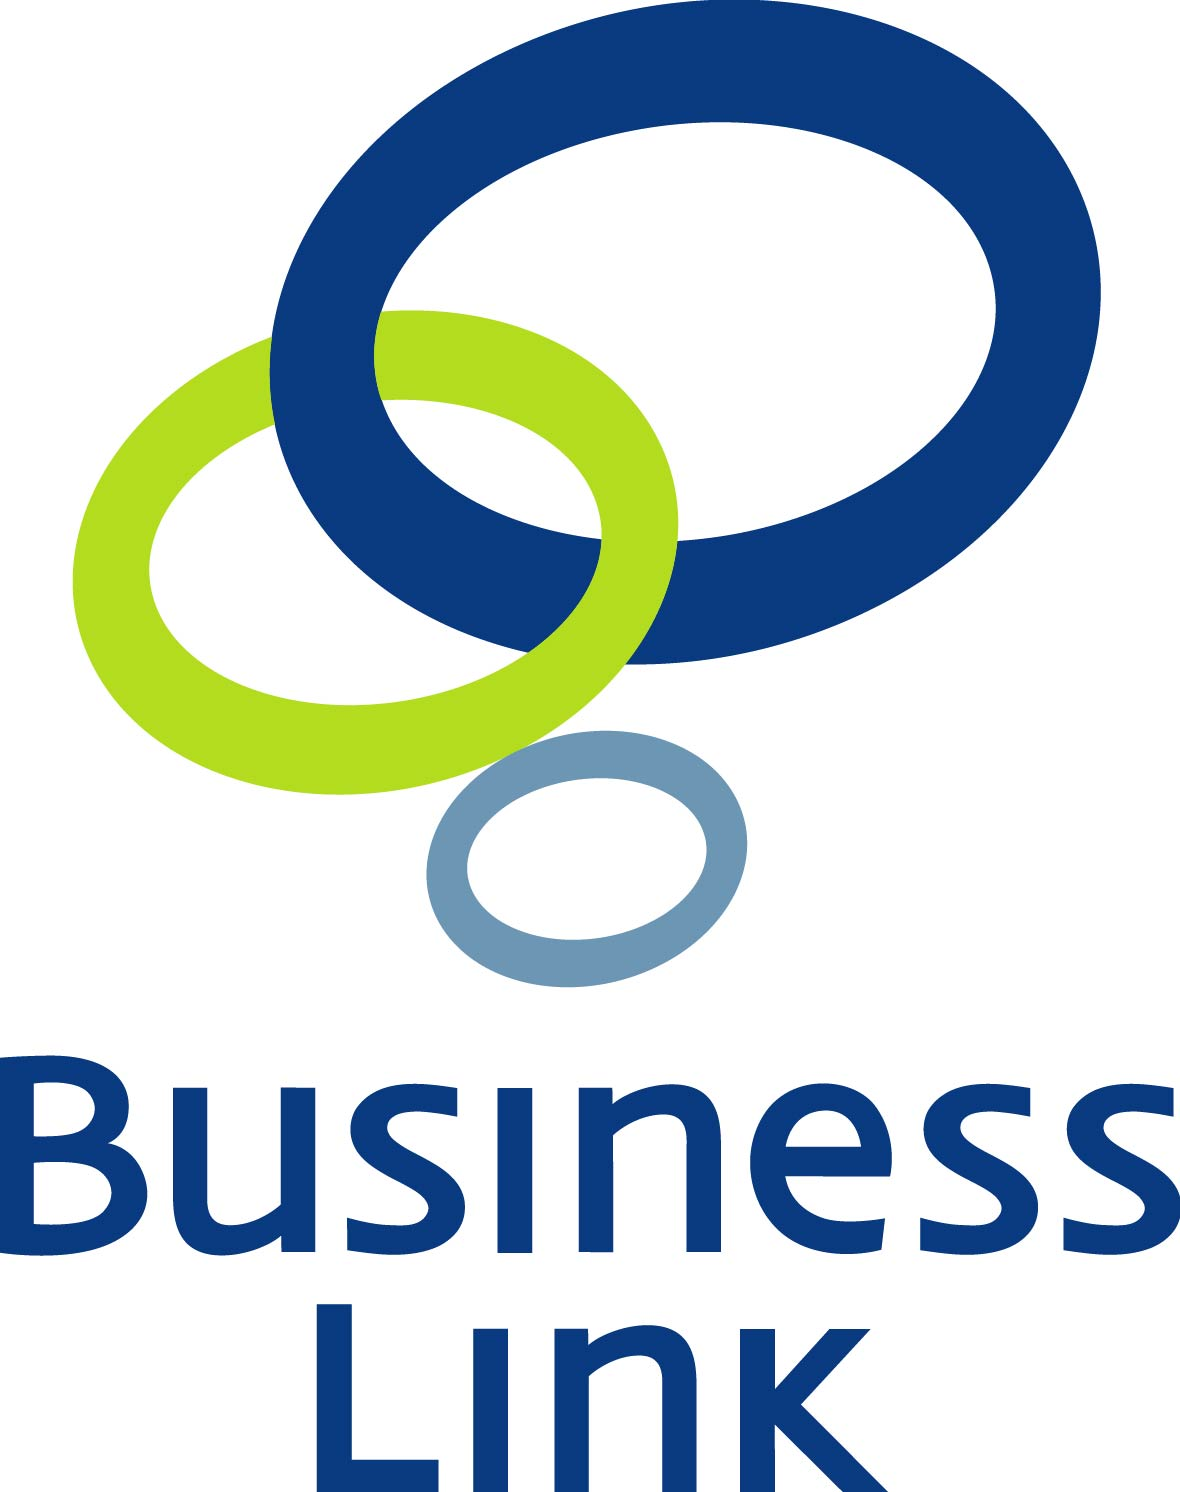 """Business Link to be scrapped """"by end of 2012"""""""